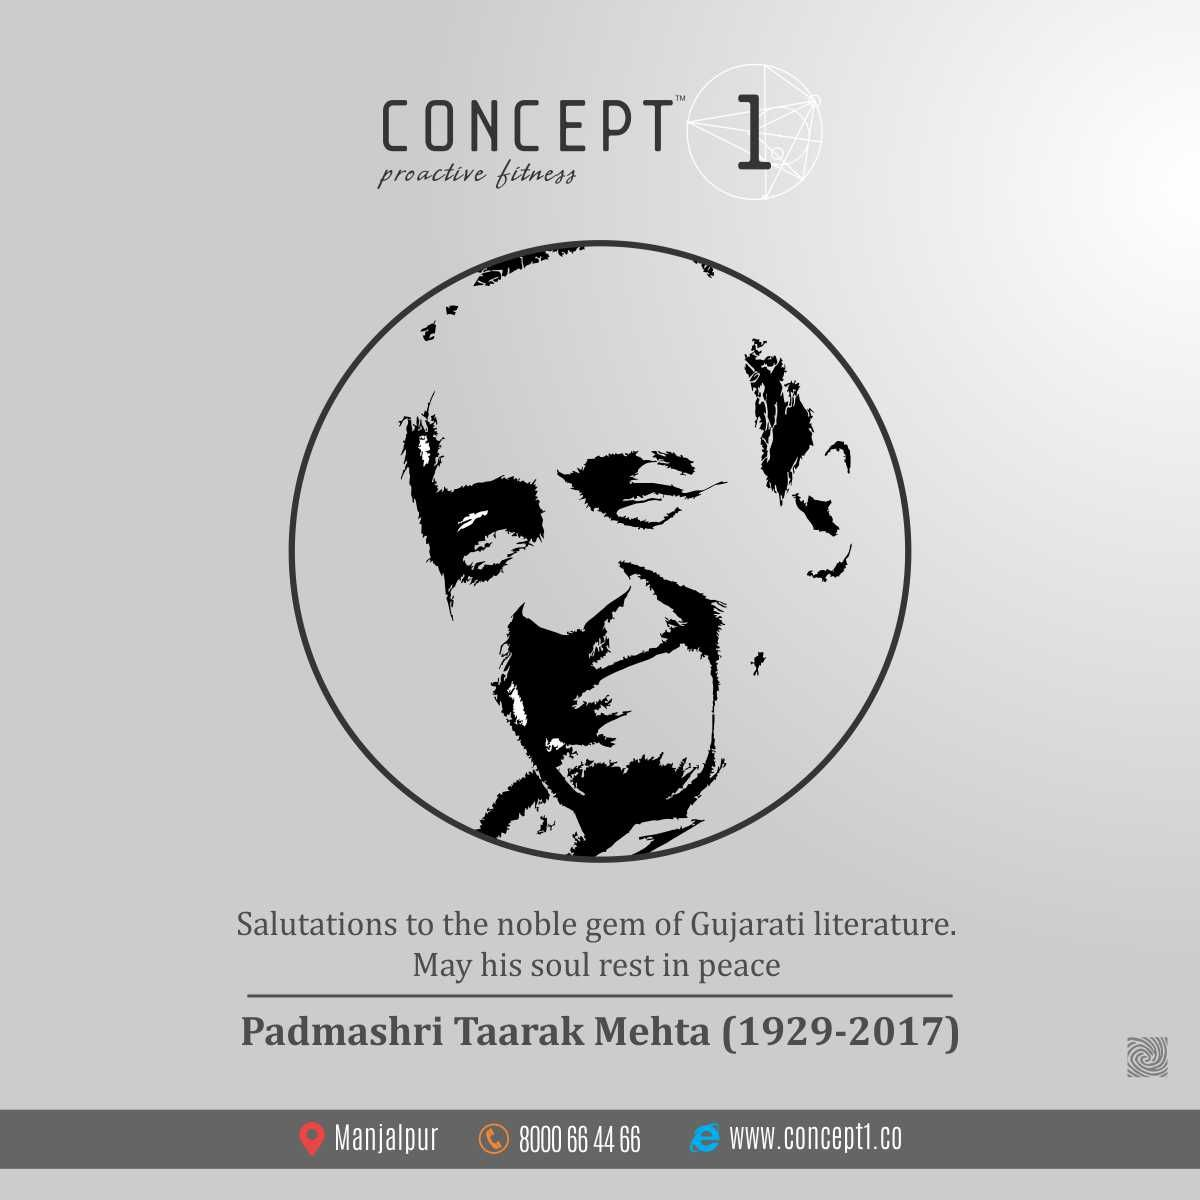 Salutations to the noble gem of Gujarati literature  May his